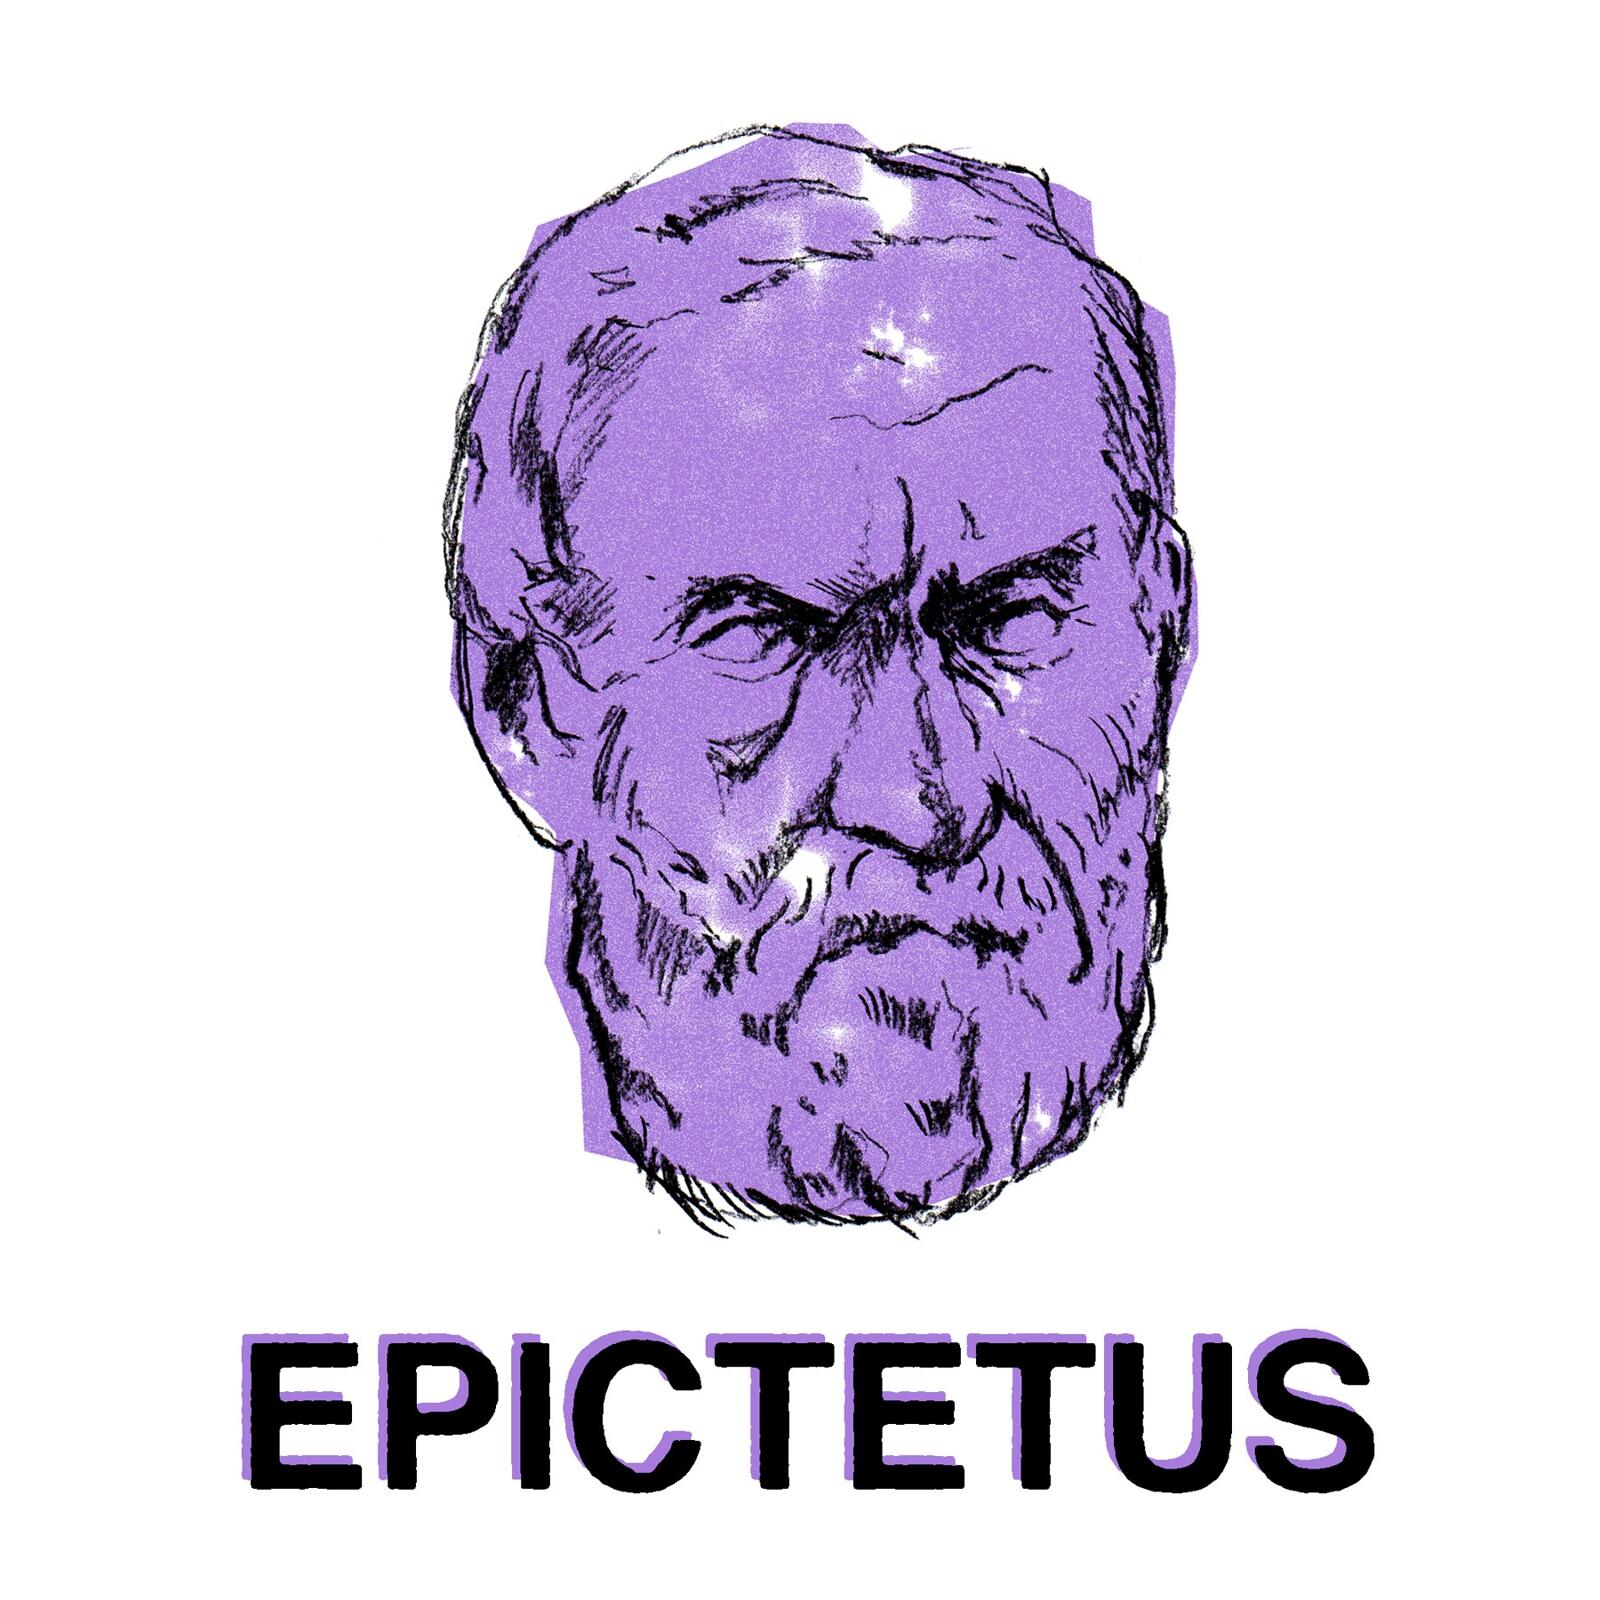 life under stoicism epictetus The difficulty in living life as a stoic life as a stoic is one focused on improving the world in more specific terms, epictetus believed the purpose of moral philosophy was to help show people the way to lead better lives.